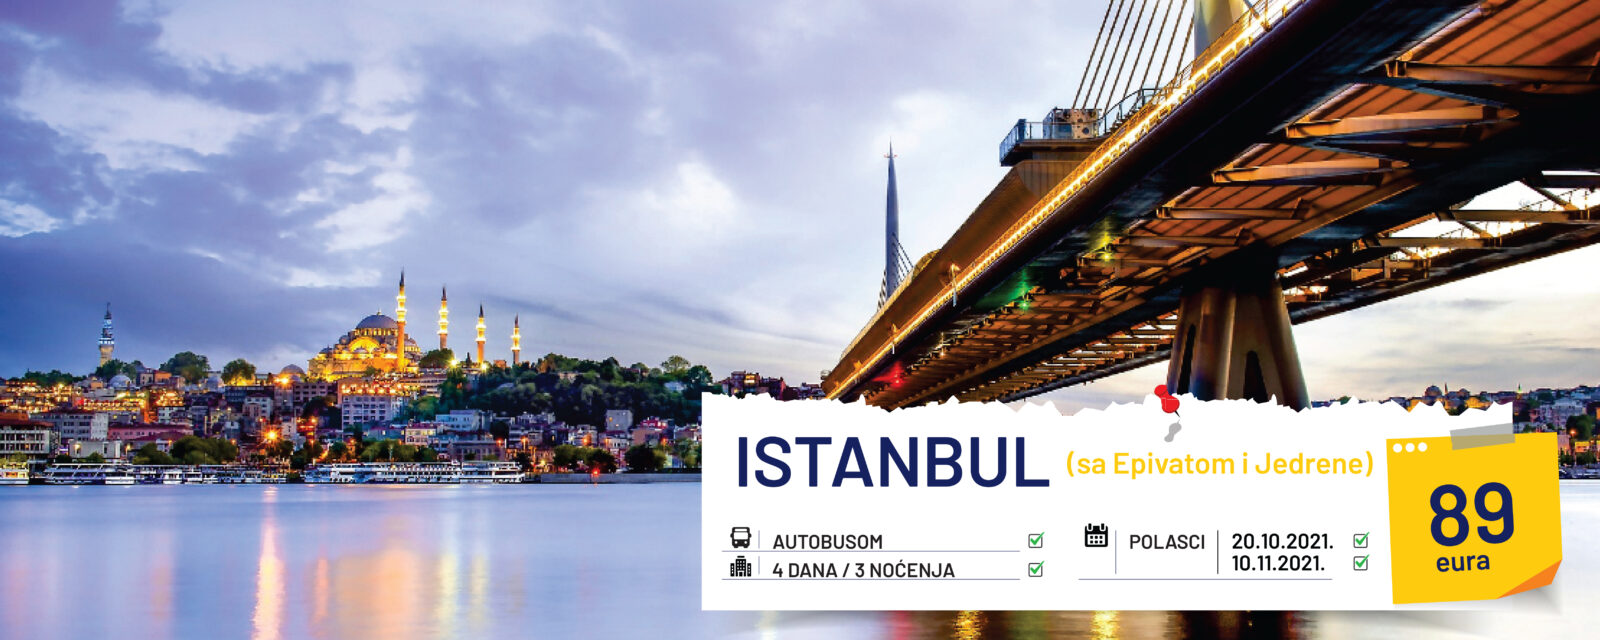 ISTANBUL.cdr